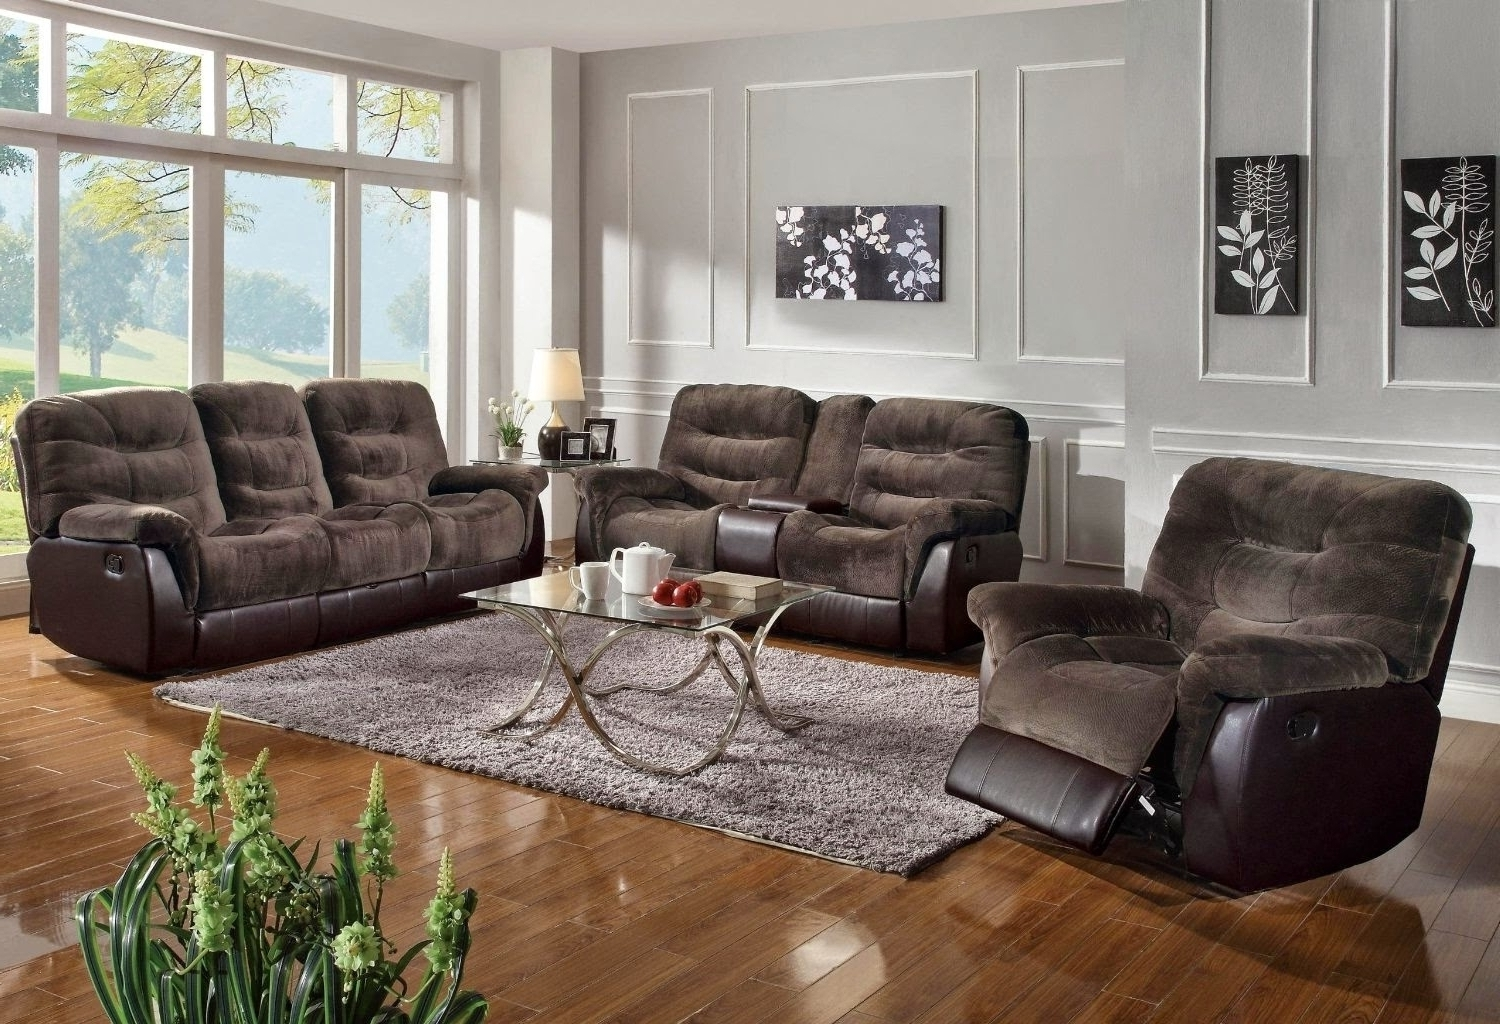 Most Recent Sectional Sofas With Recliners For Small Spaces For Furniture Reclining Sectional Sofas For Small Spaces Reclining (View 4 of 20)